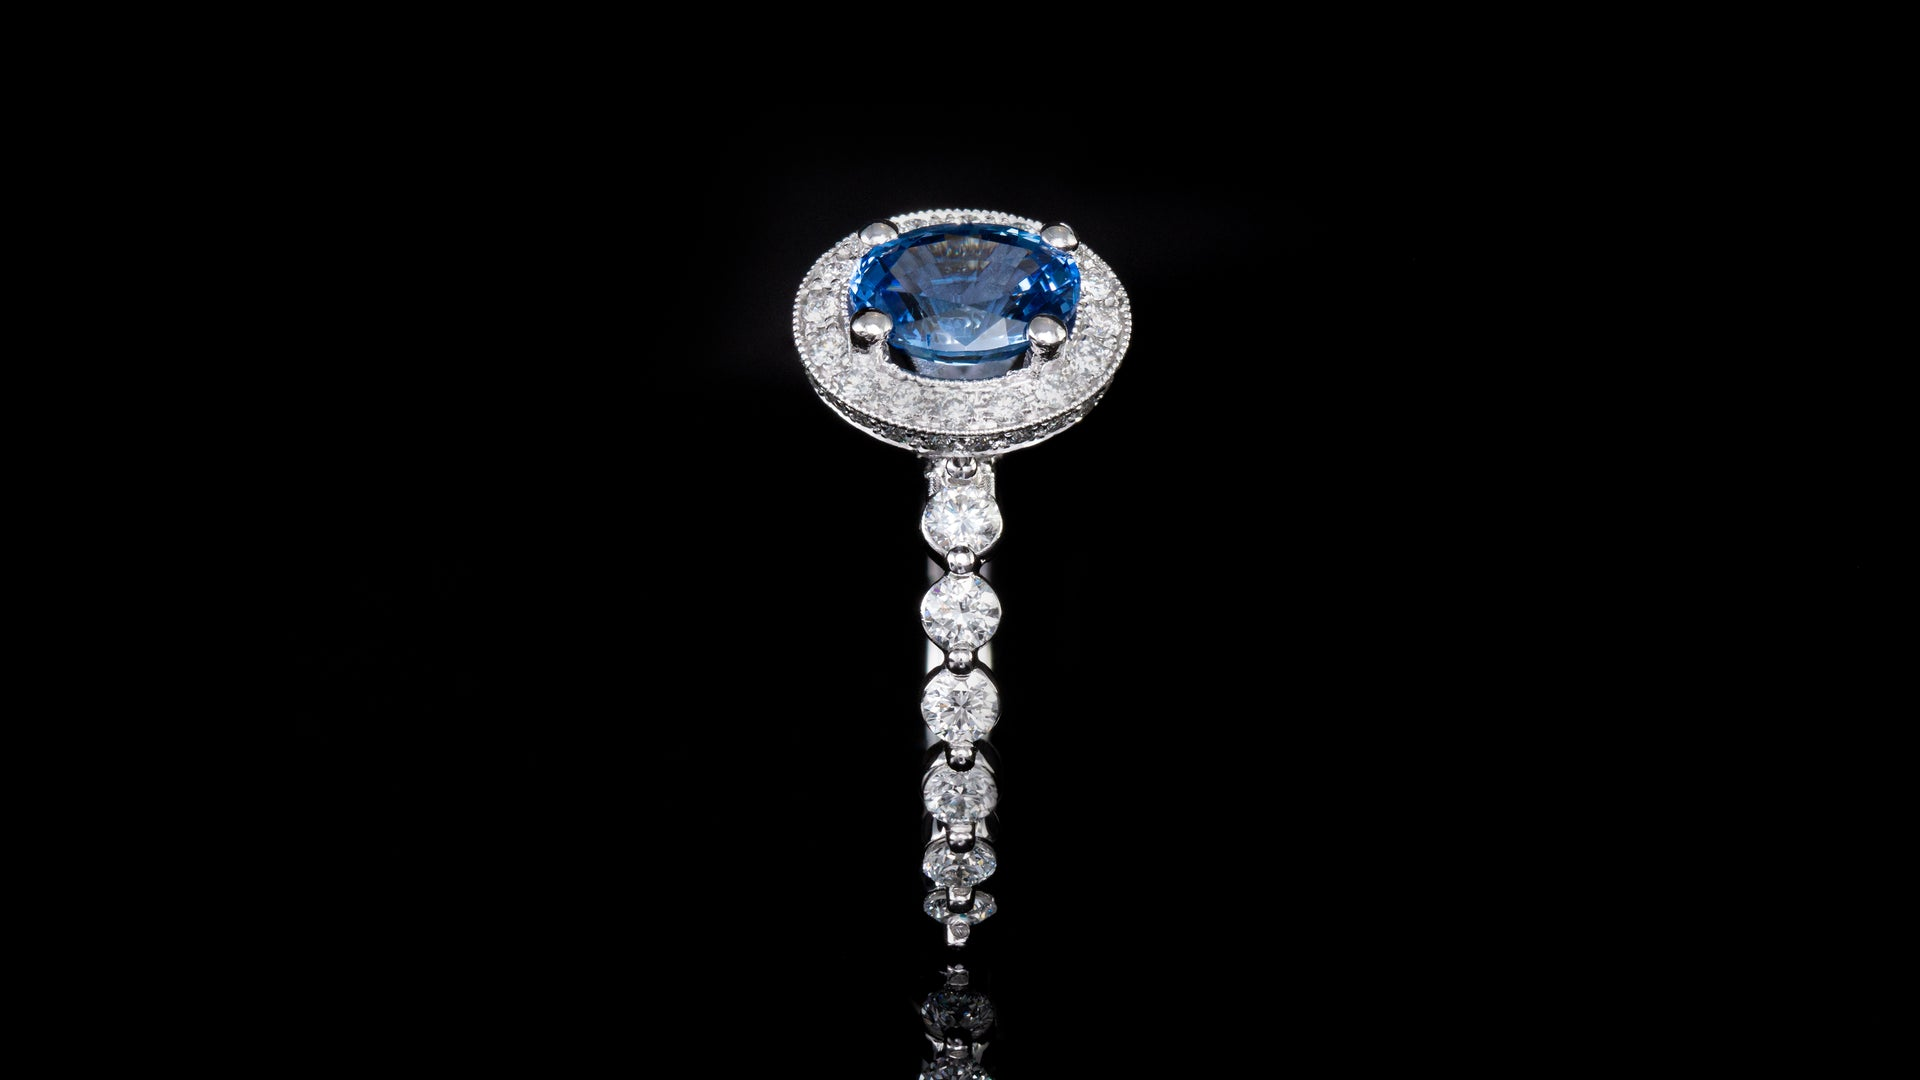 19k White Gold Classic Milligree With Blue Oval Sapphire Engagement Ring